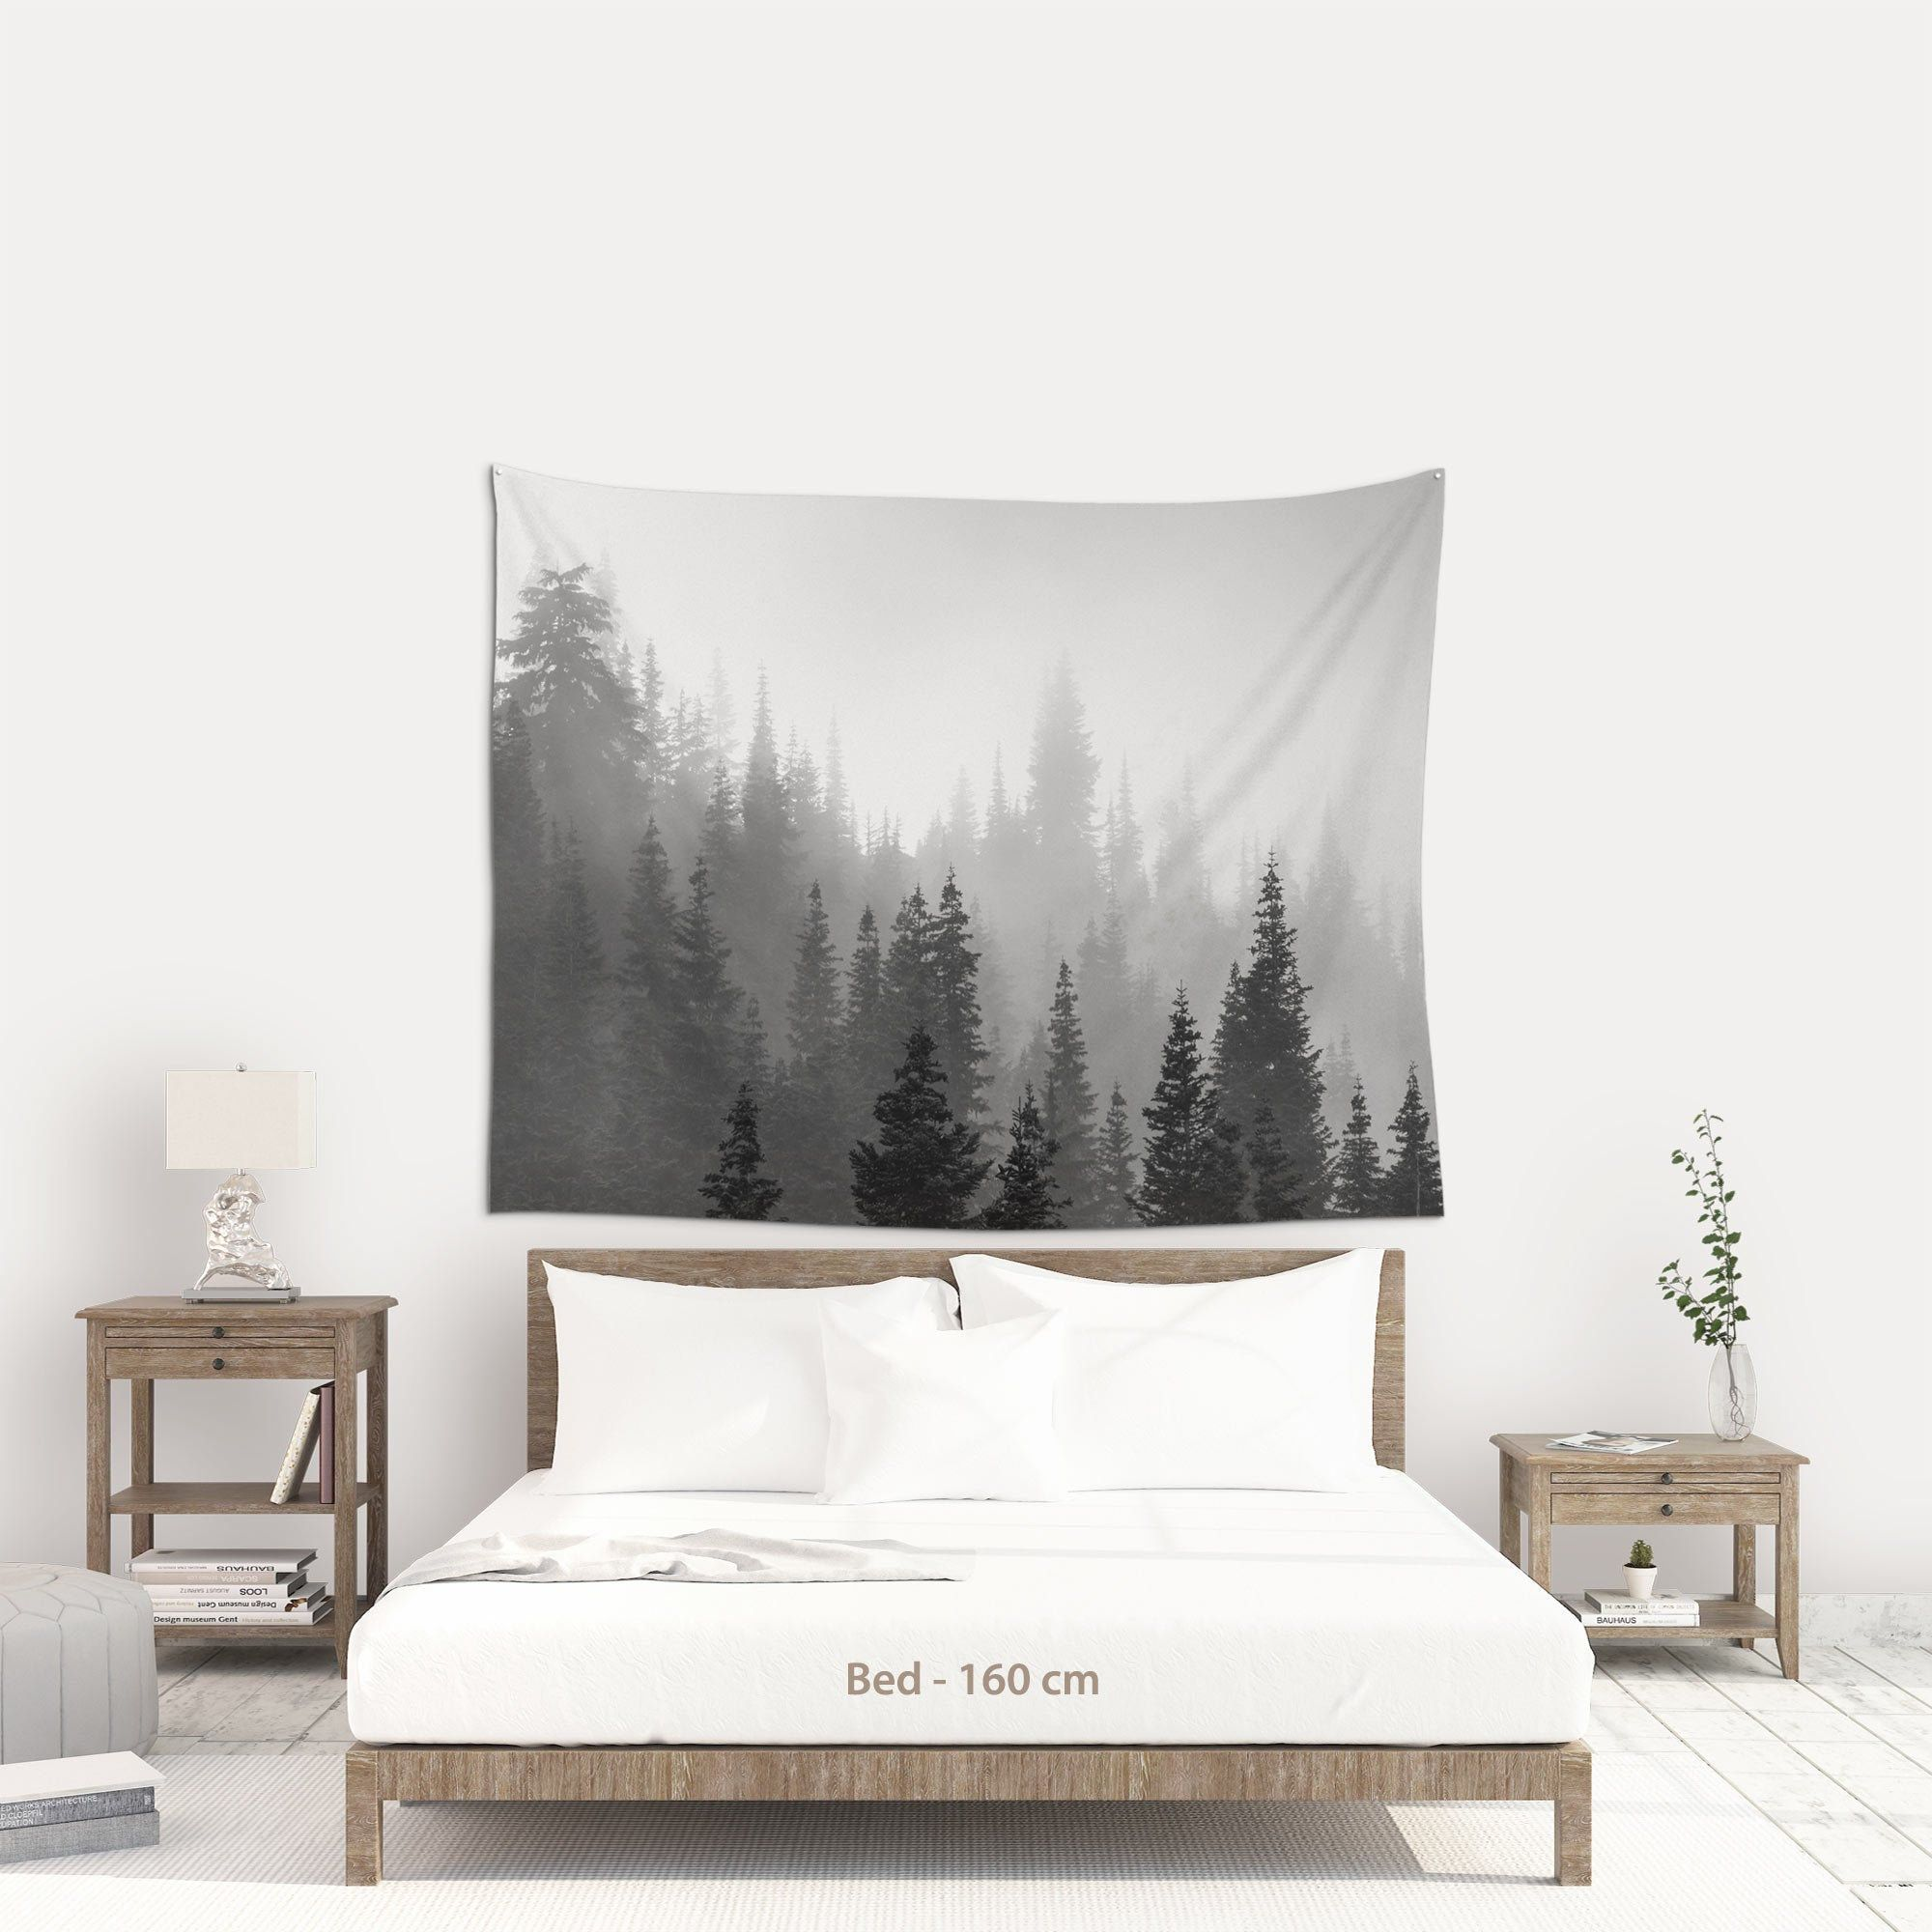 Misty Forest Wall Hanging Fabric Black And White Trees And Fog For Bohemian Wall Decor Ships From Europe Mw004eu Bohemian Wall Decor Black And White Tree White Tree